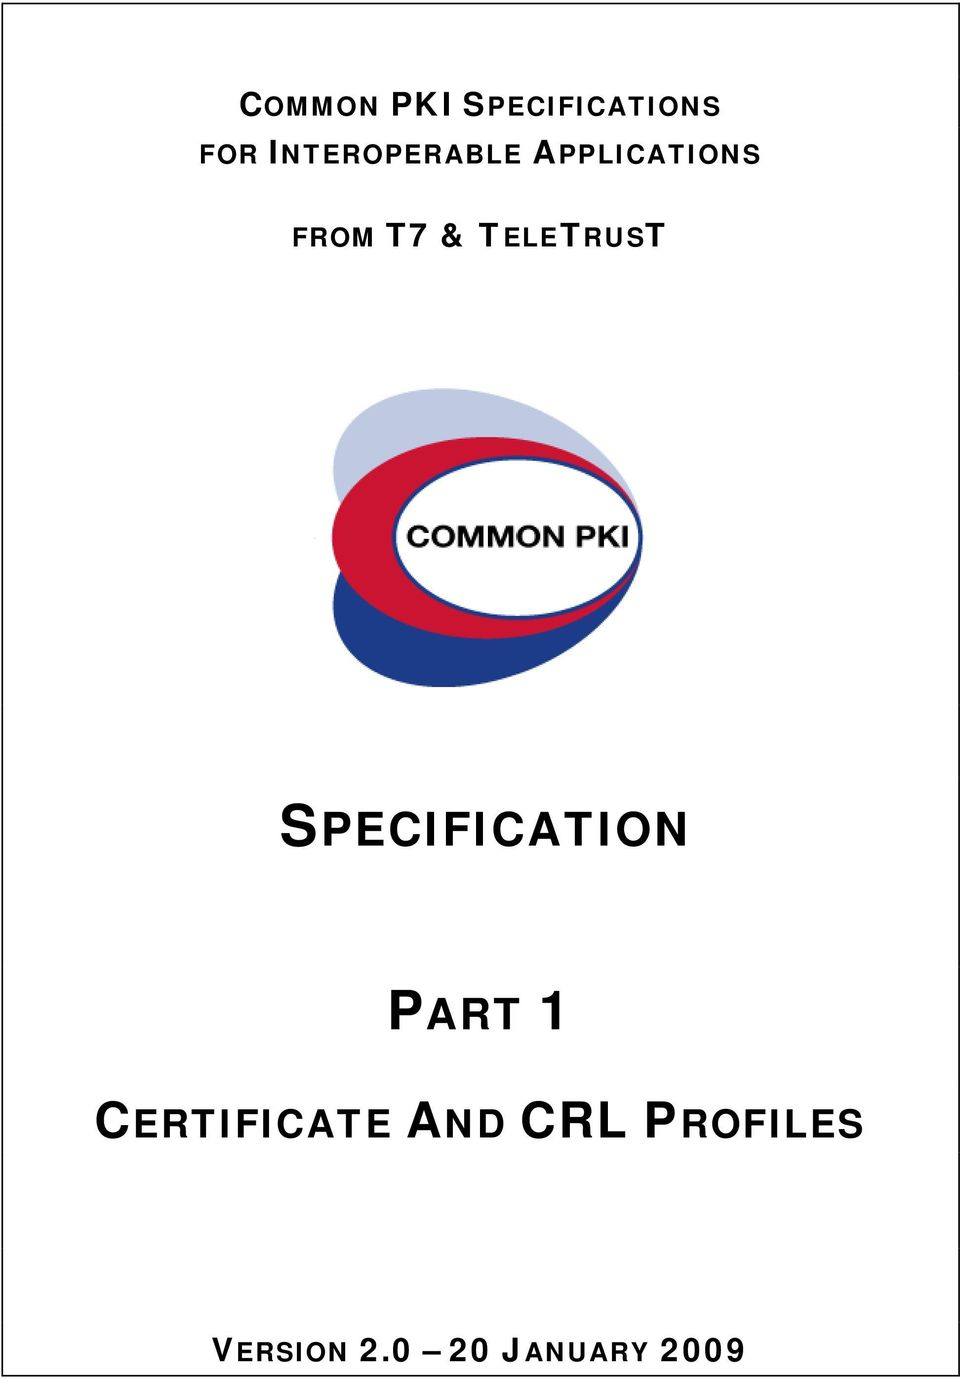 TELETRUST SPECIFICATION PART 1